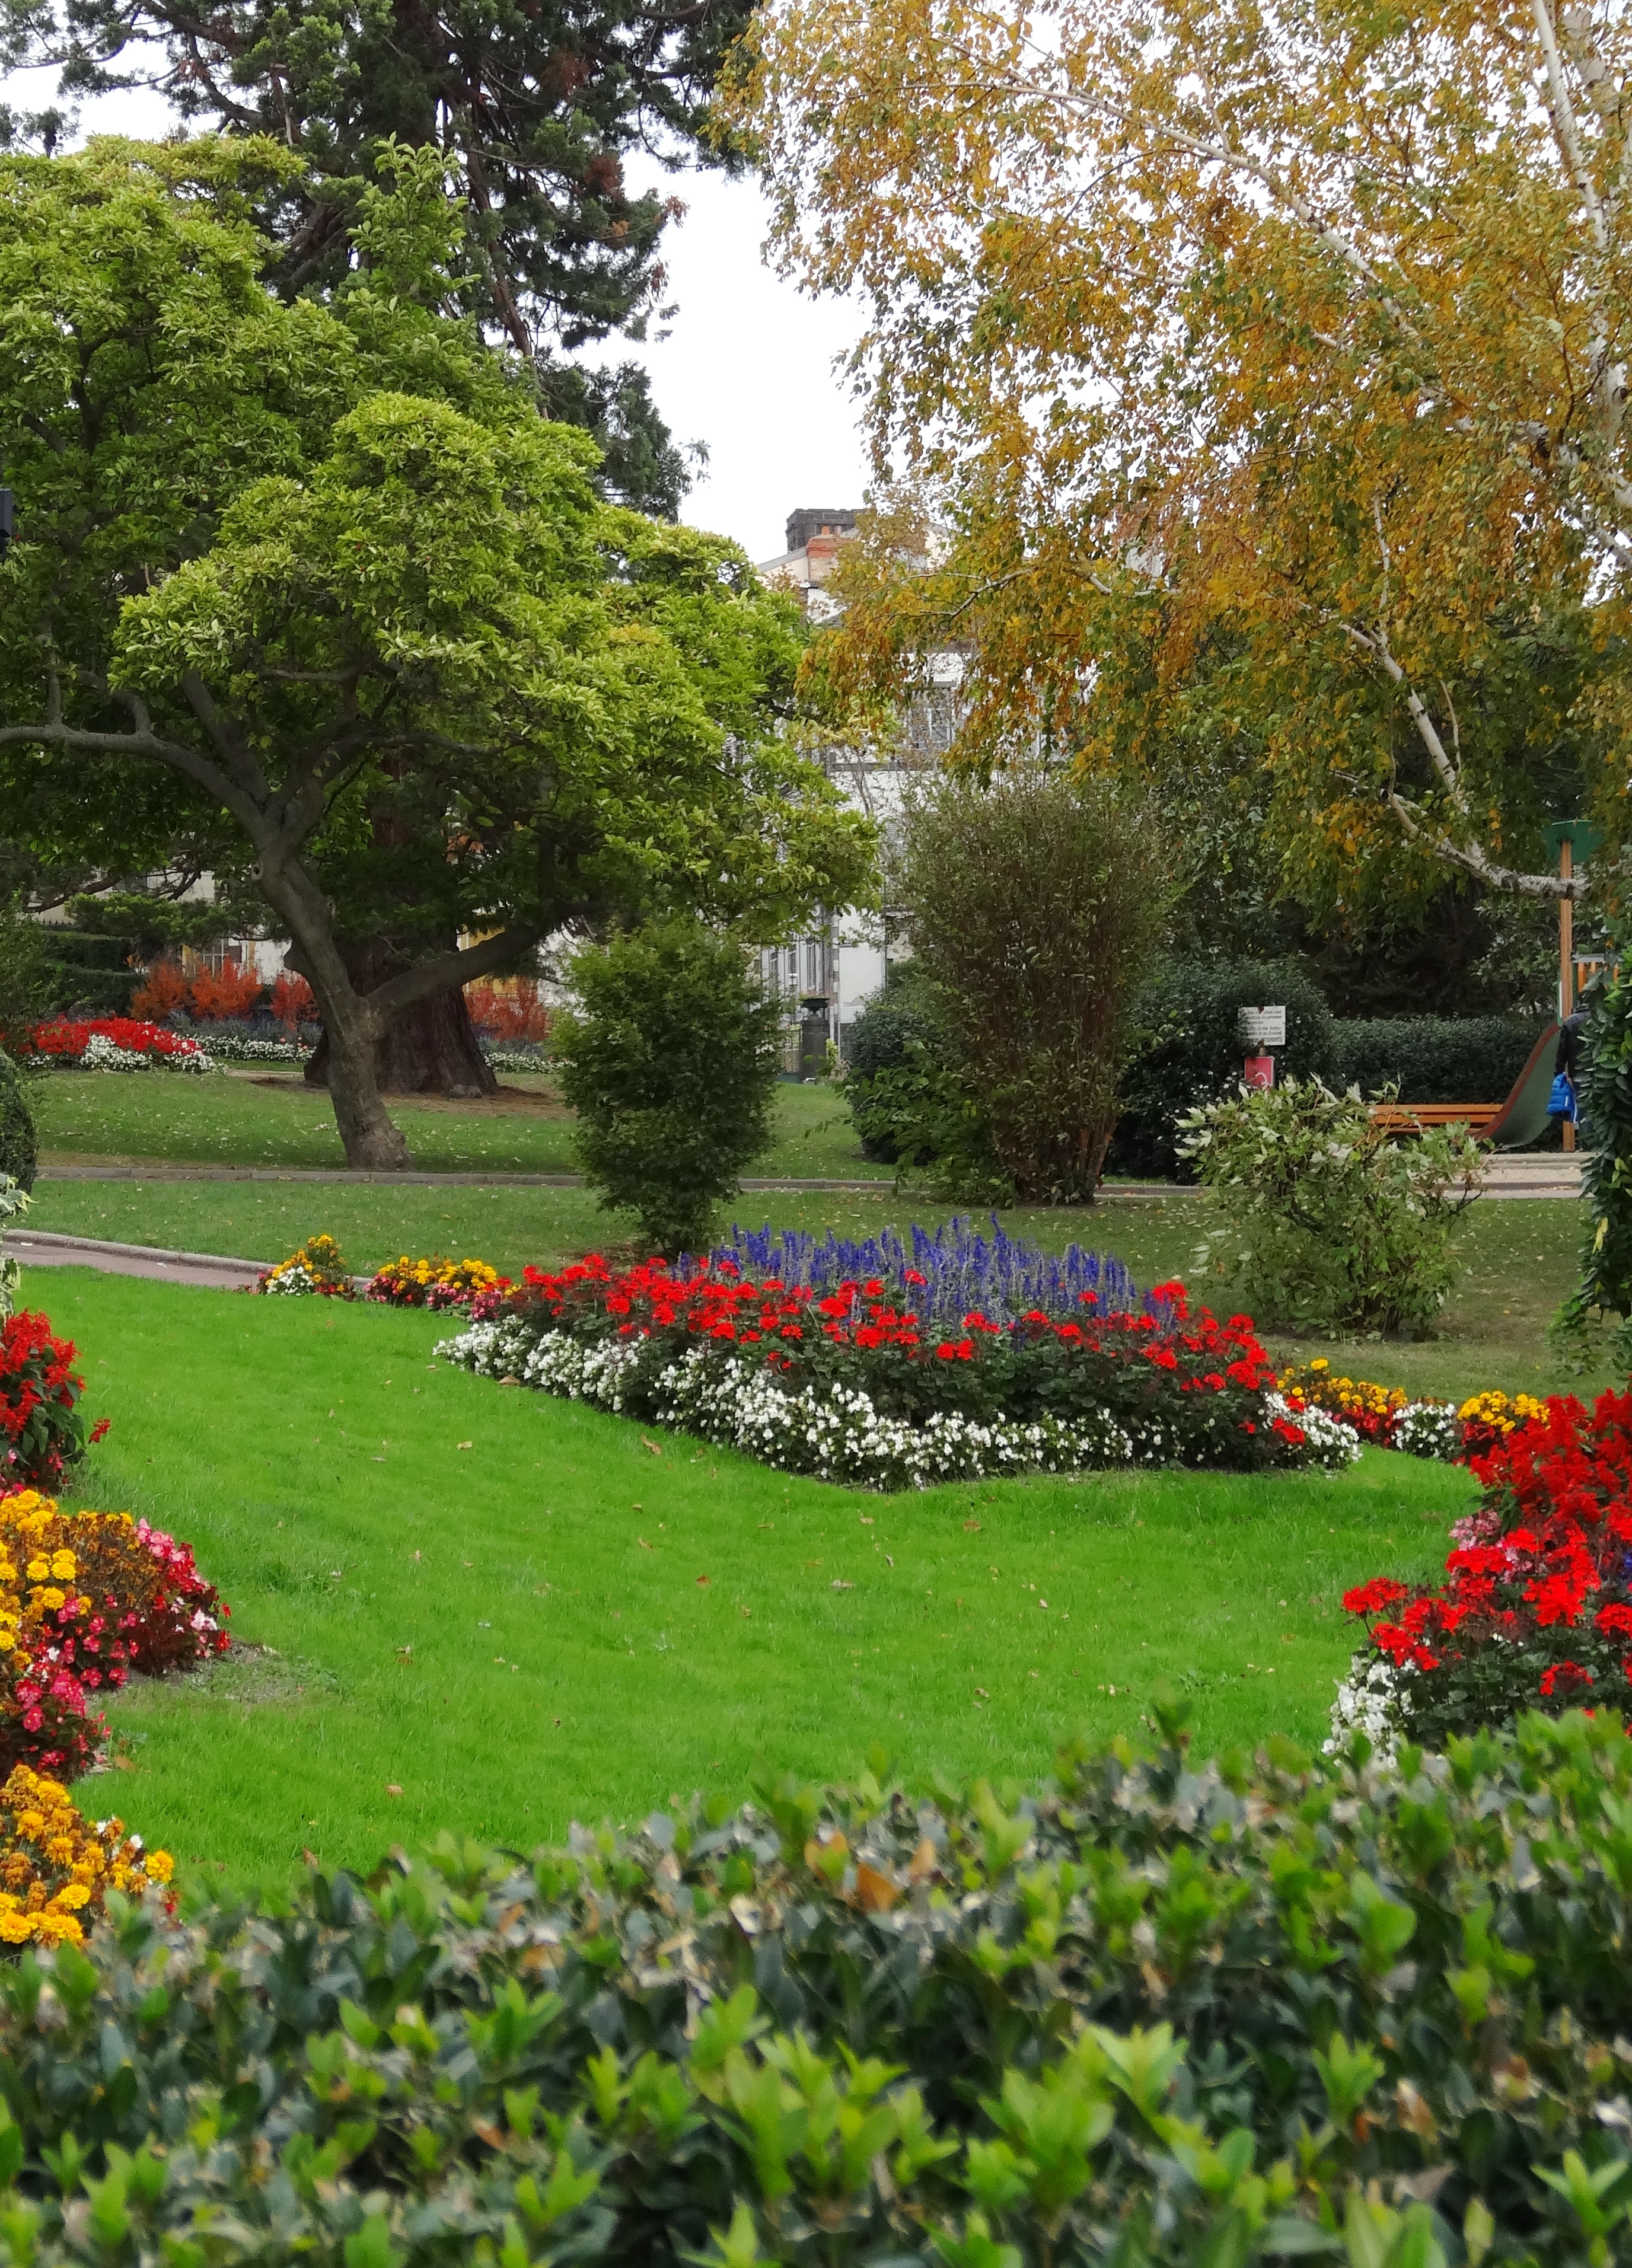 File clermont ferrand jardin lecoq jpg wikimedia commons - Amenagement jardin photos clermont ferrand ...